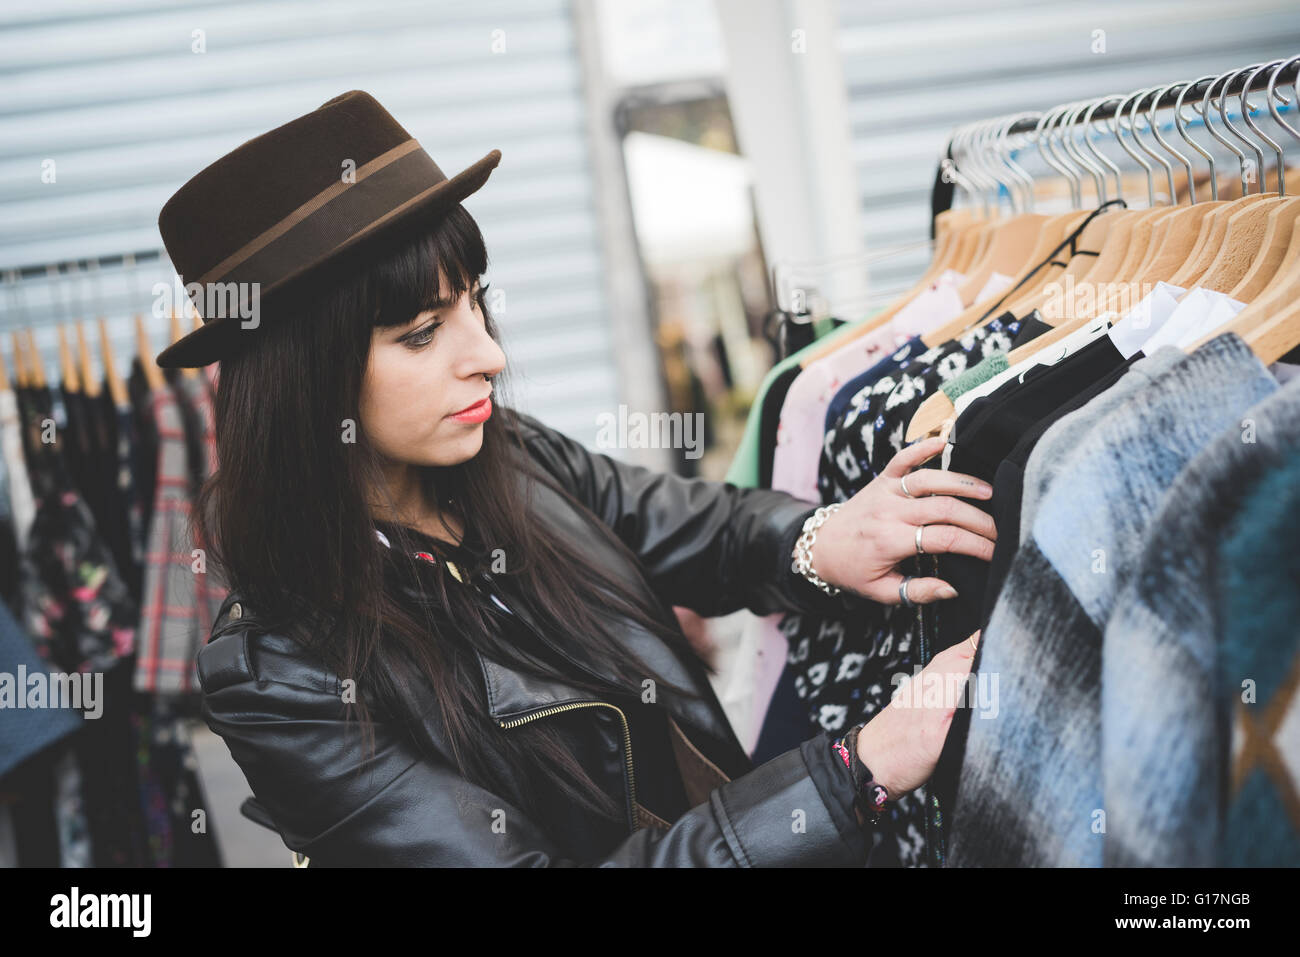 Young woman browsing clothes at market - Stock Image